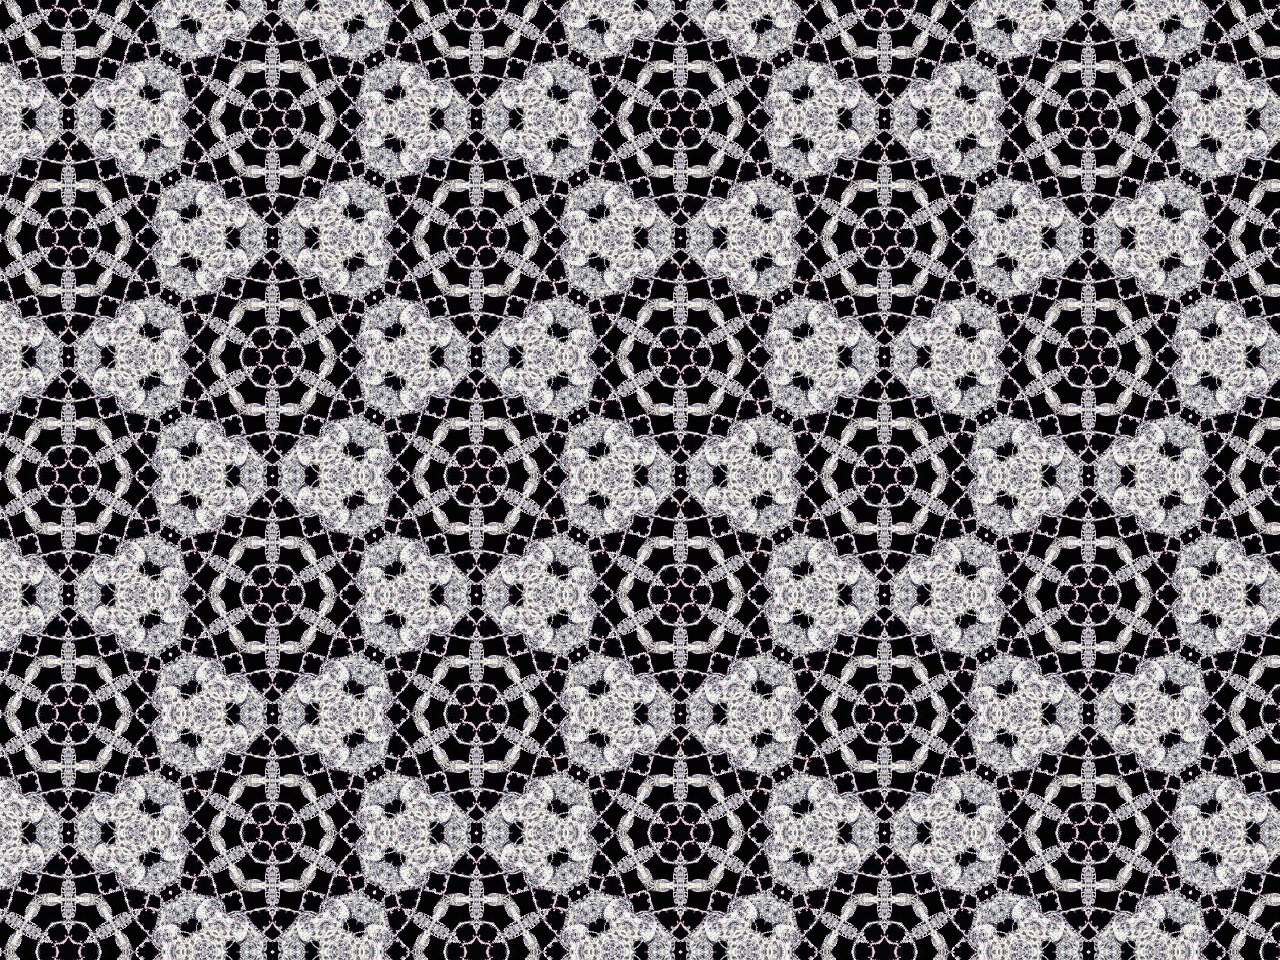 lace background images artbyjean images of lace white lace threads over black 4190